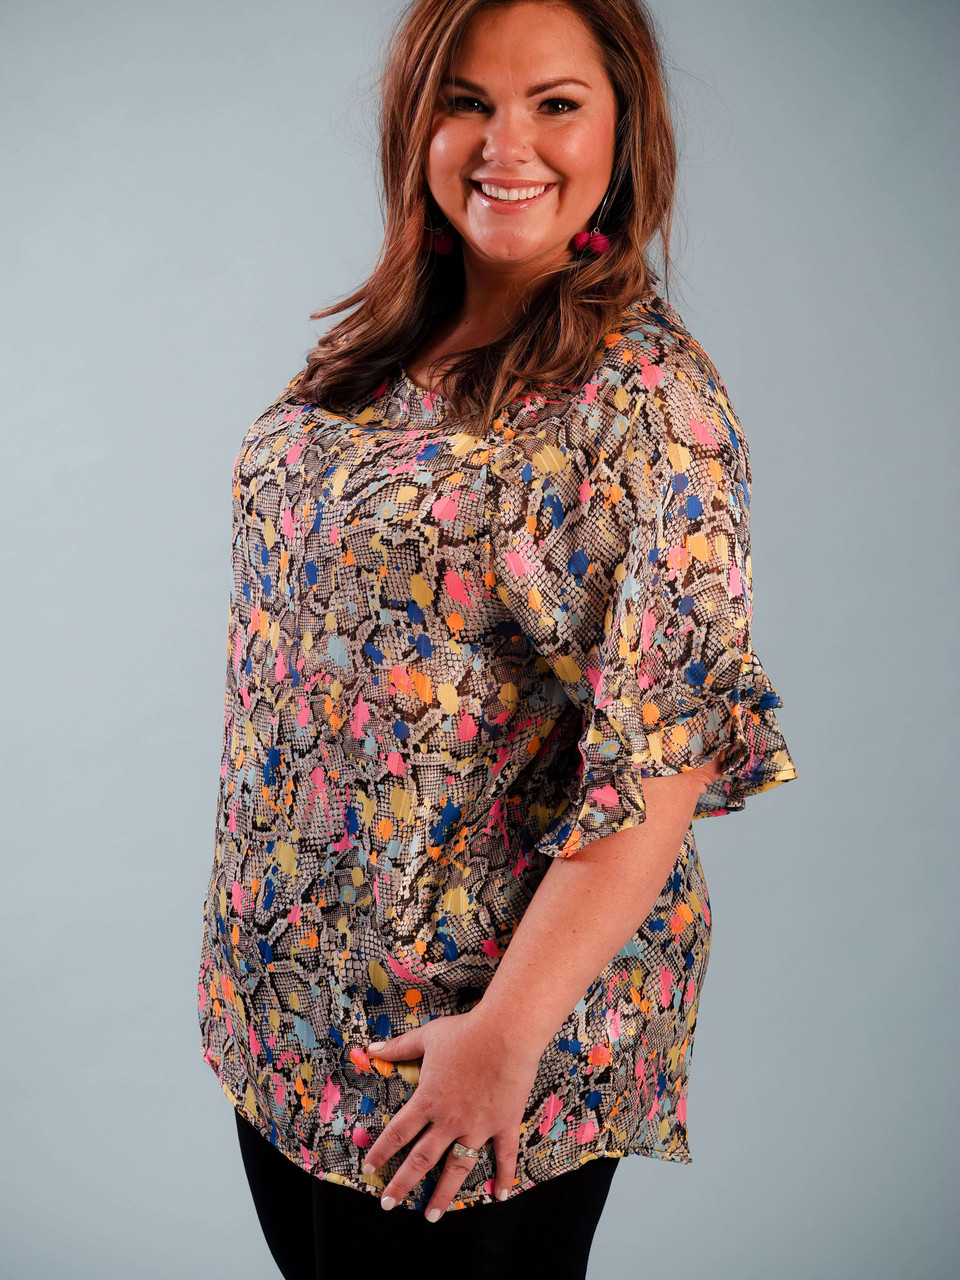 snakeskin printed blouse with neon colors and metallic detail plus clothing curvy